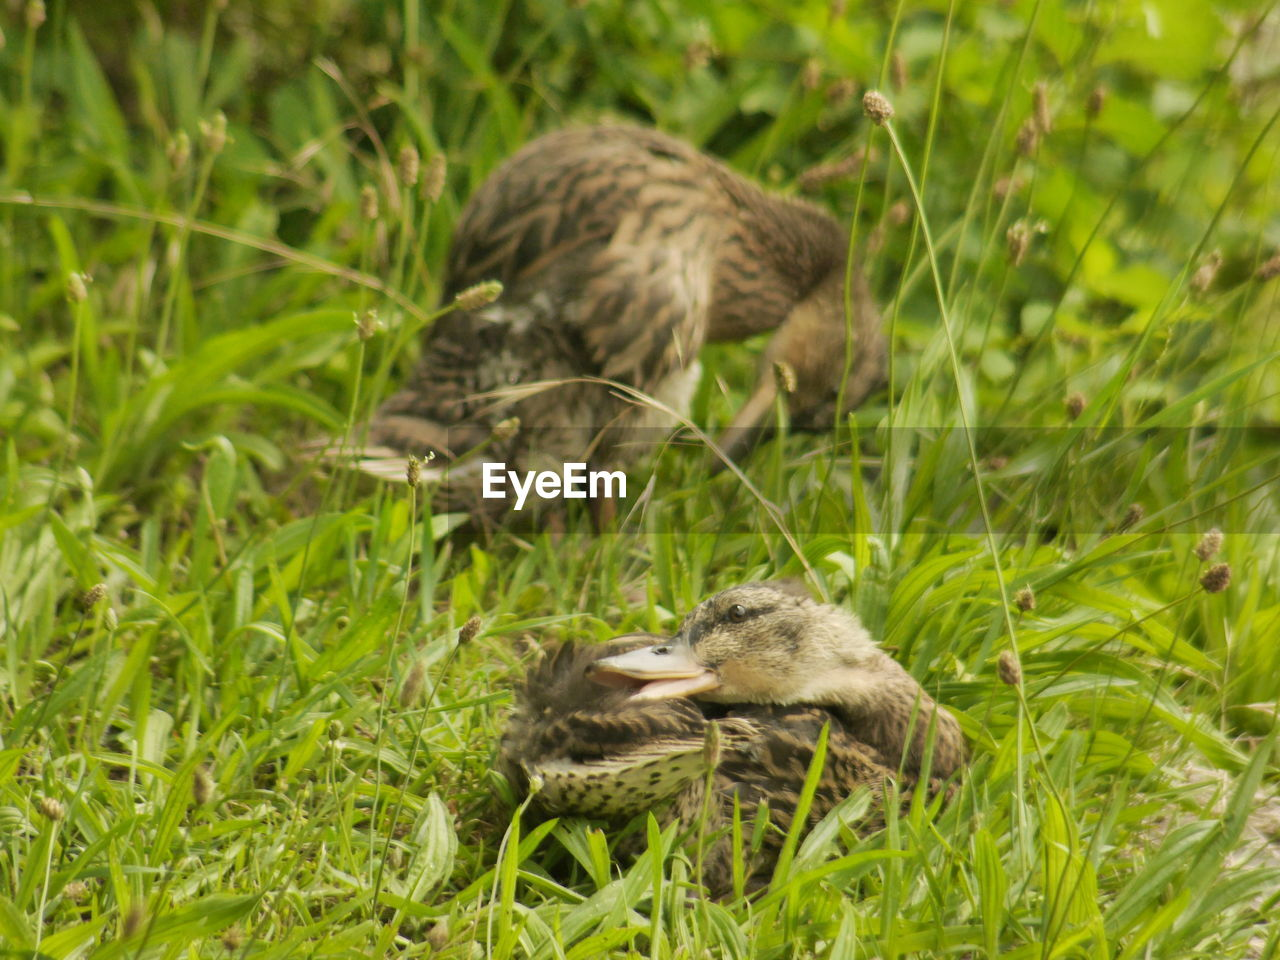 young bird, animal themes, grass, young animal, togetherness, duckling, animals in the wild, field, nature, green color, growth, bird, no people, gosling, outdoors, day, mammal